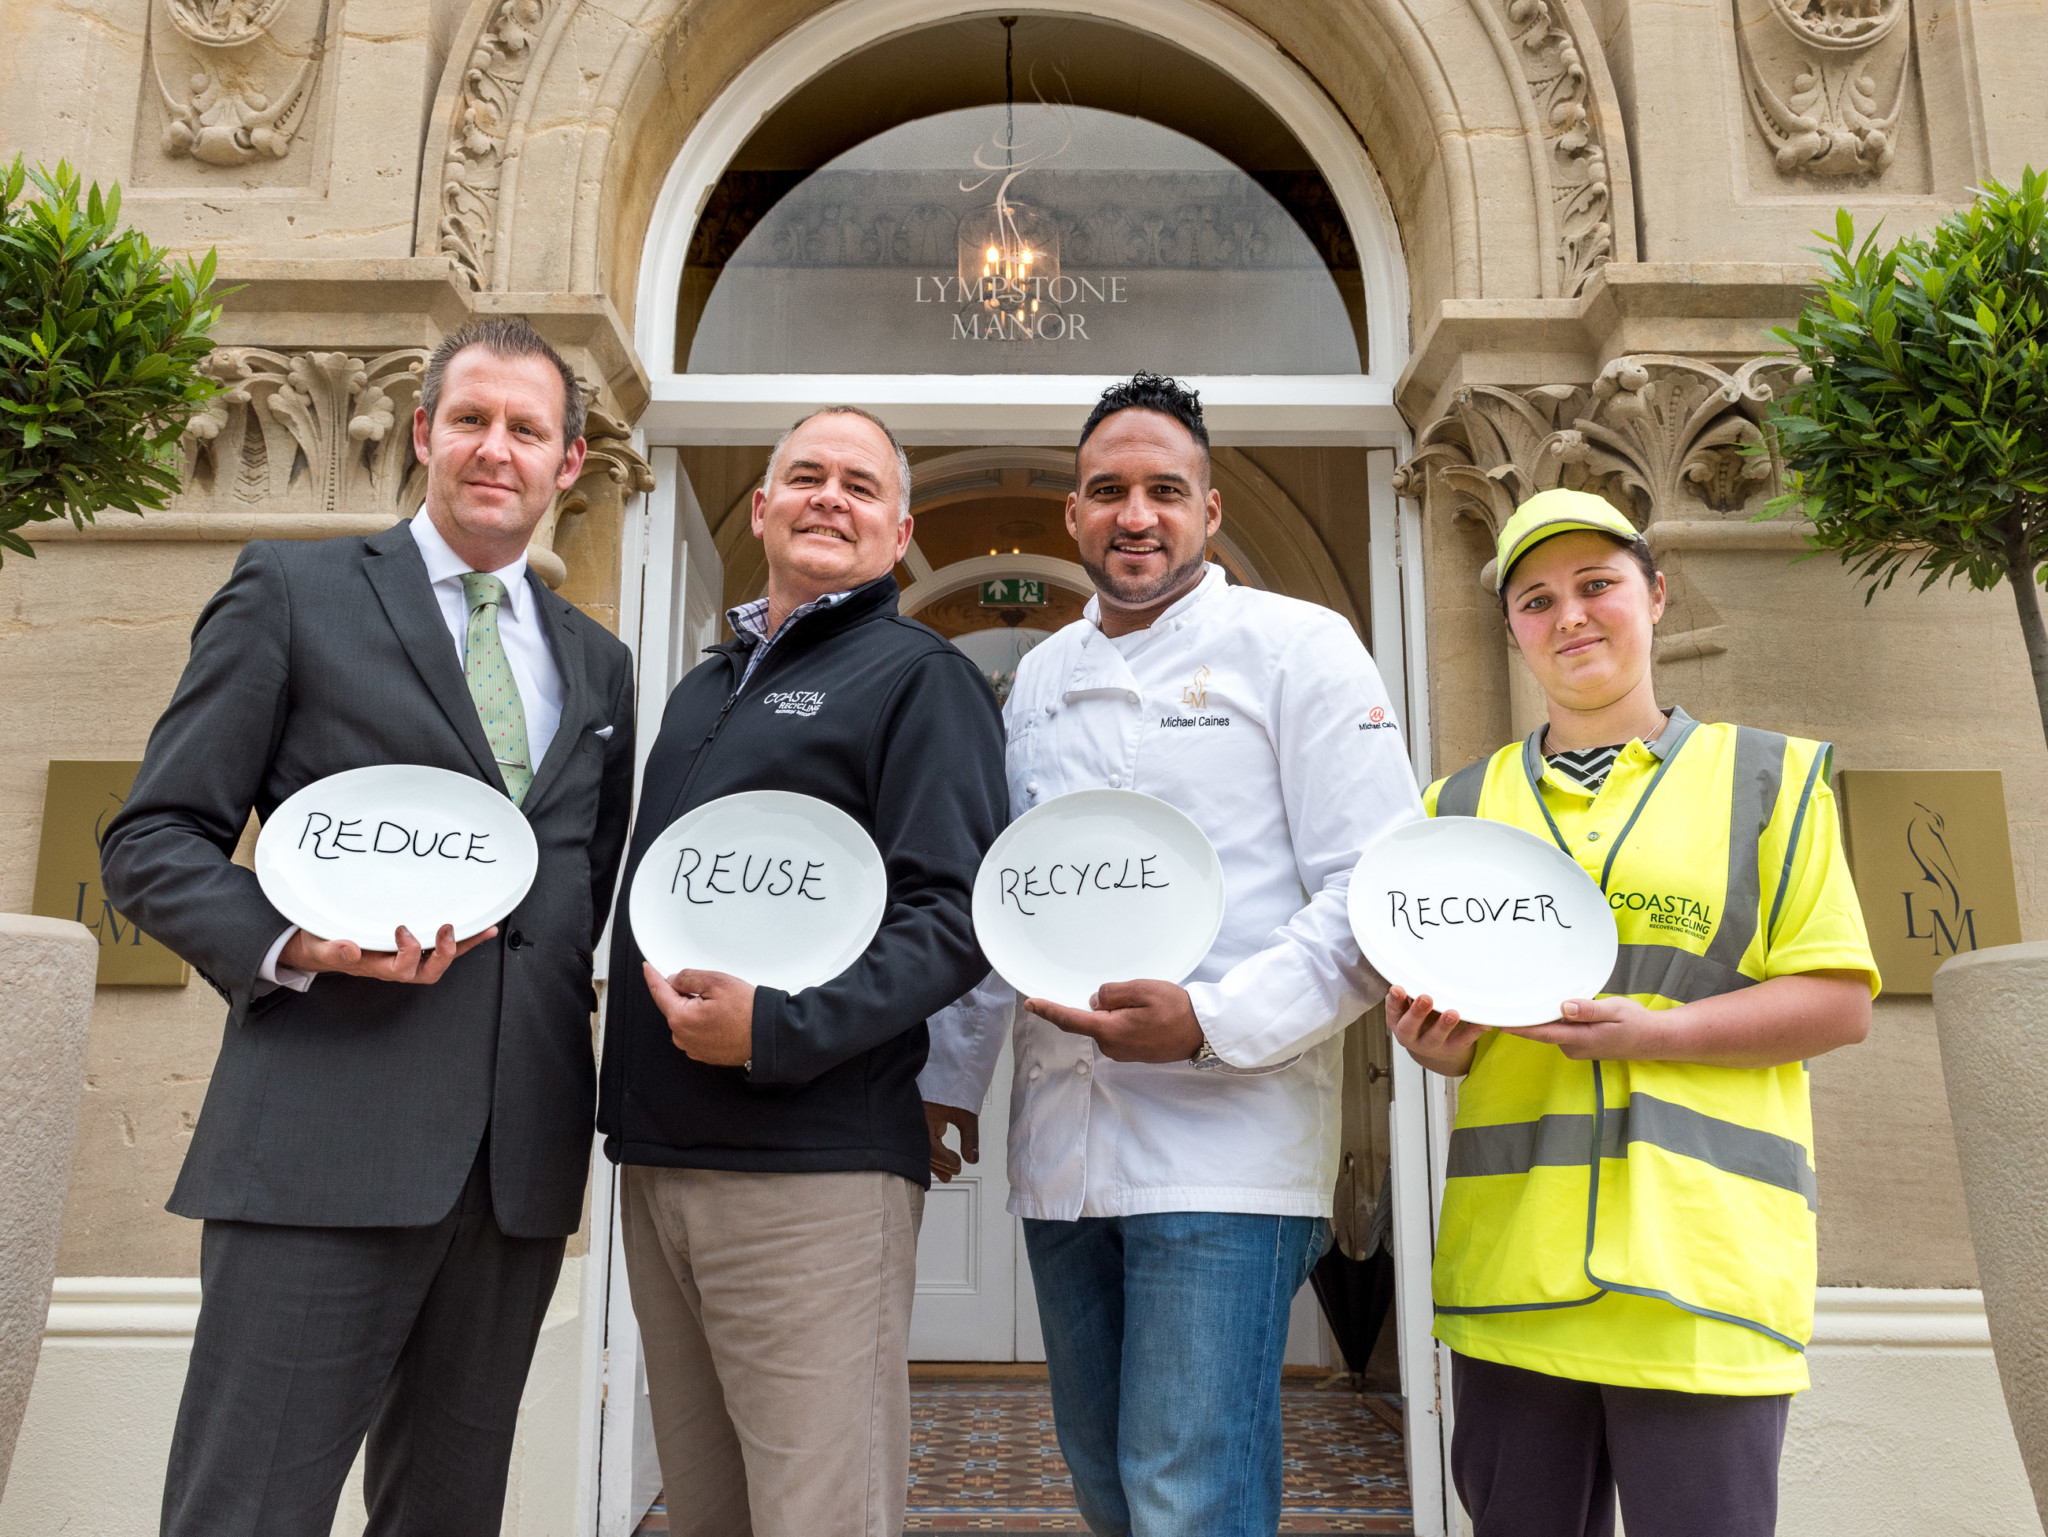 Scott Andrews, General Manager, Lympstone Manor; Richard Marsh, Director, Coastal Recycling; Michael Caines MBE, Chef Patron, Lympstone Manor and Mihaela Platoh_credit Andrew Butler